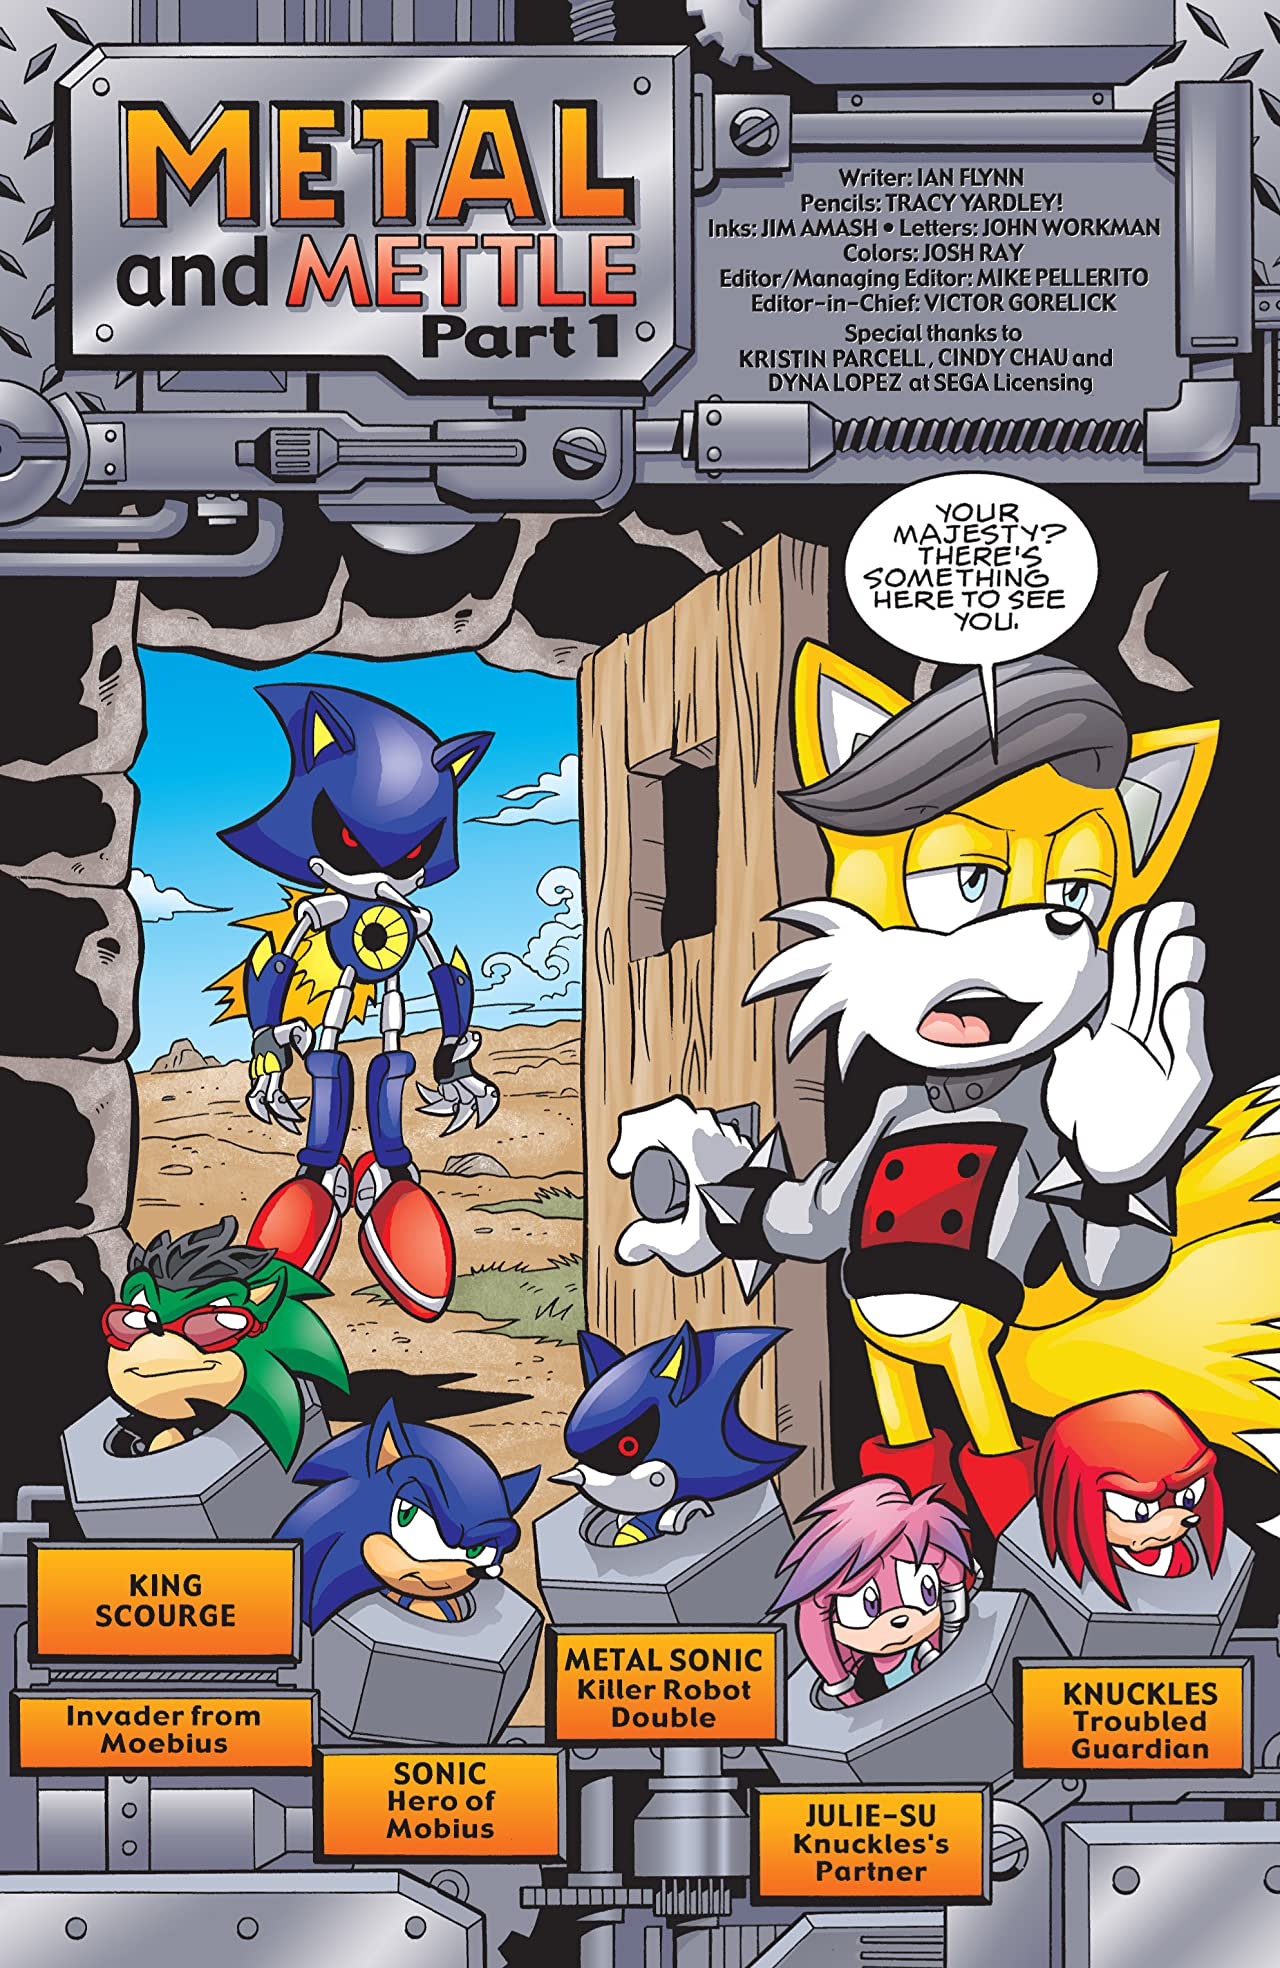 Sonic the Hedgehog #191